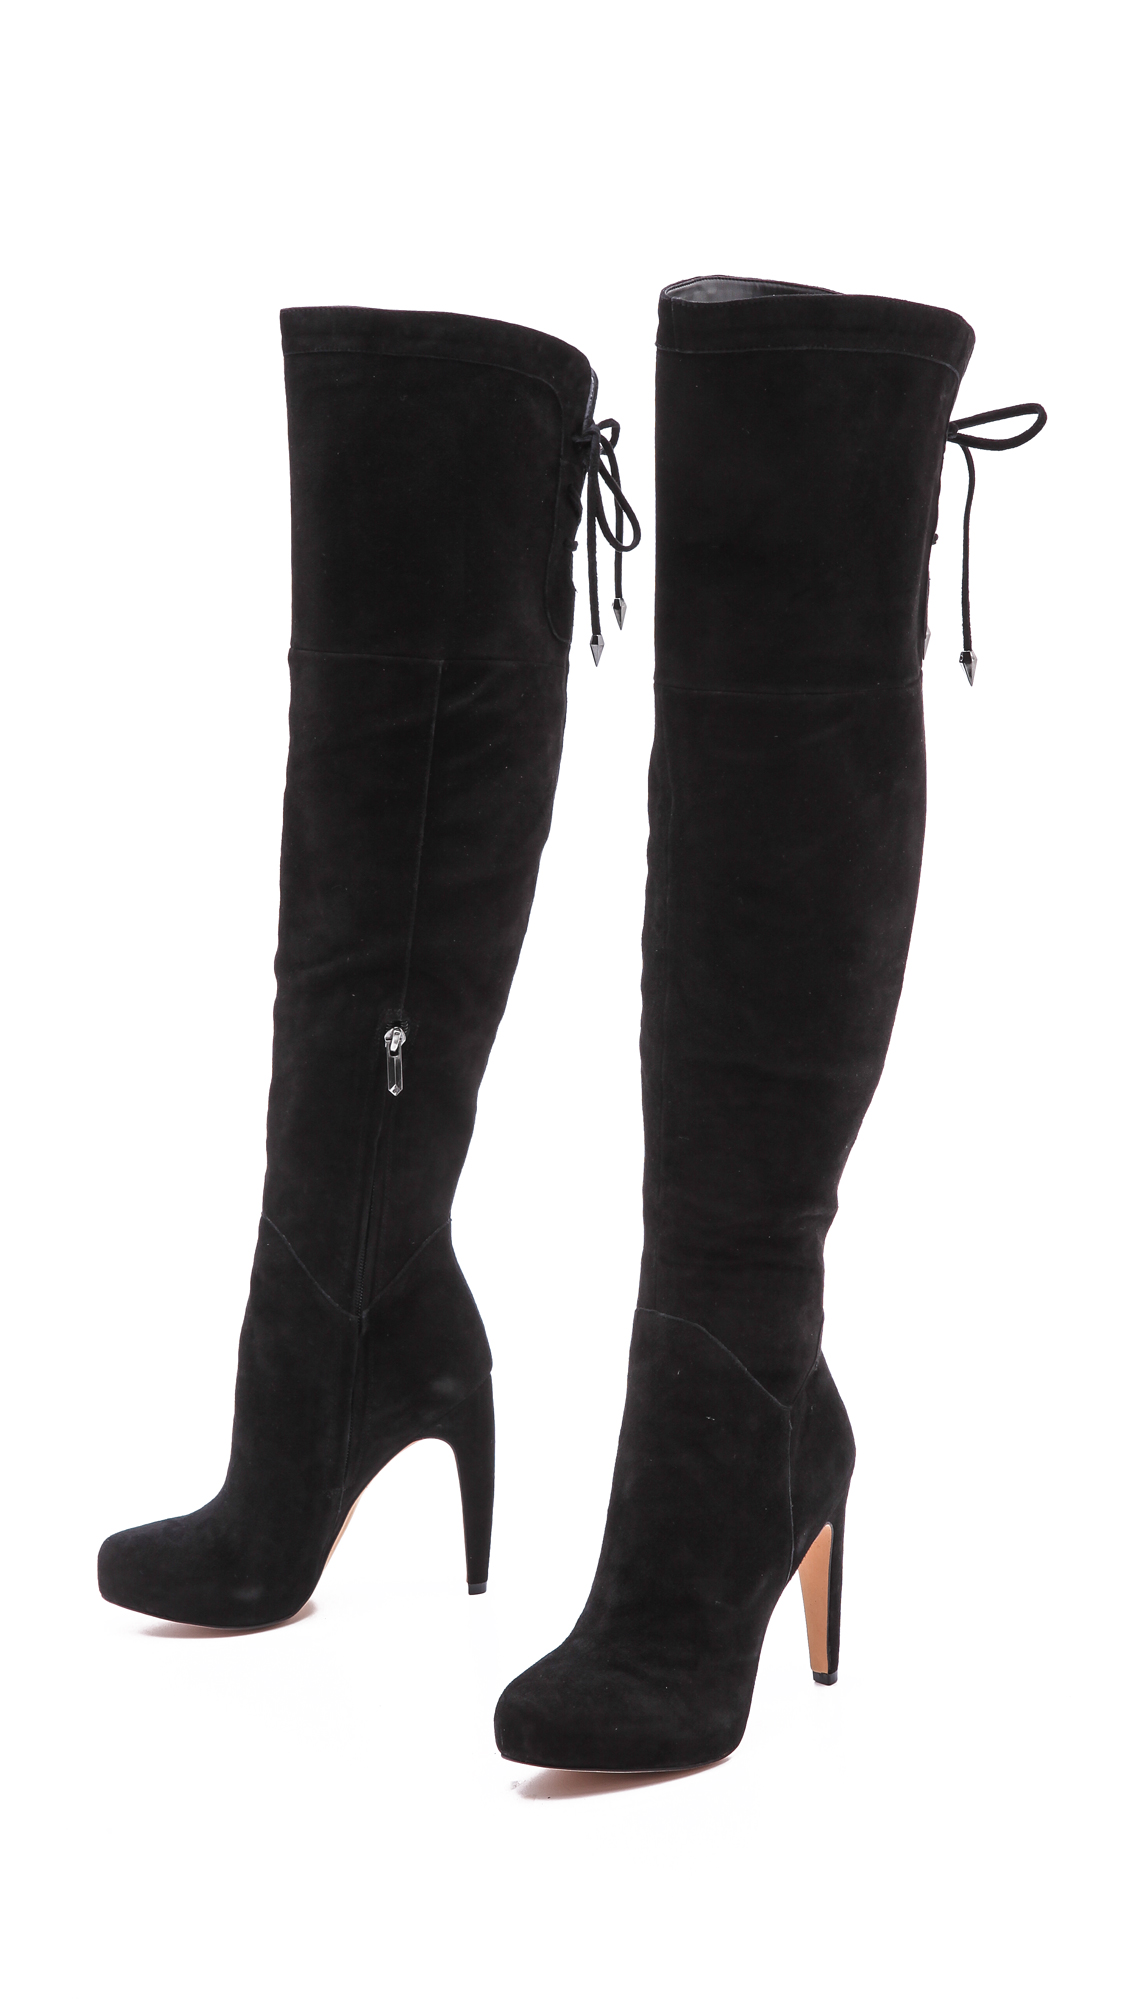 Sam edelman Kayla Over The Knee Boots in Black